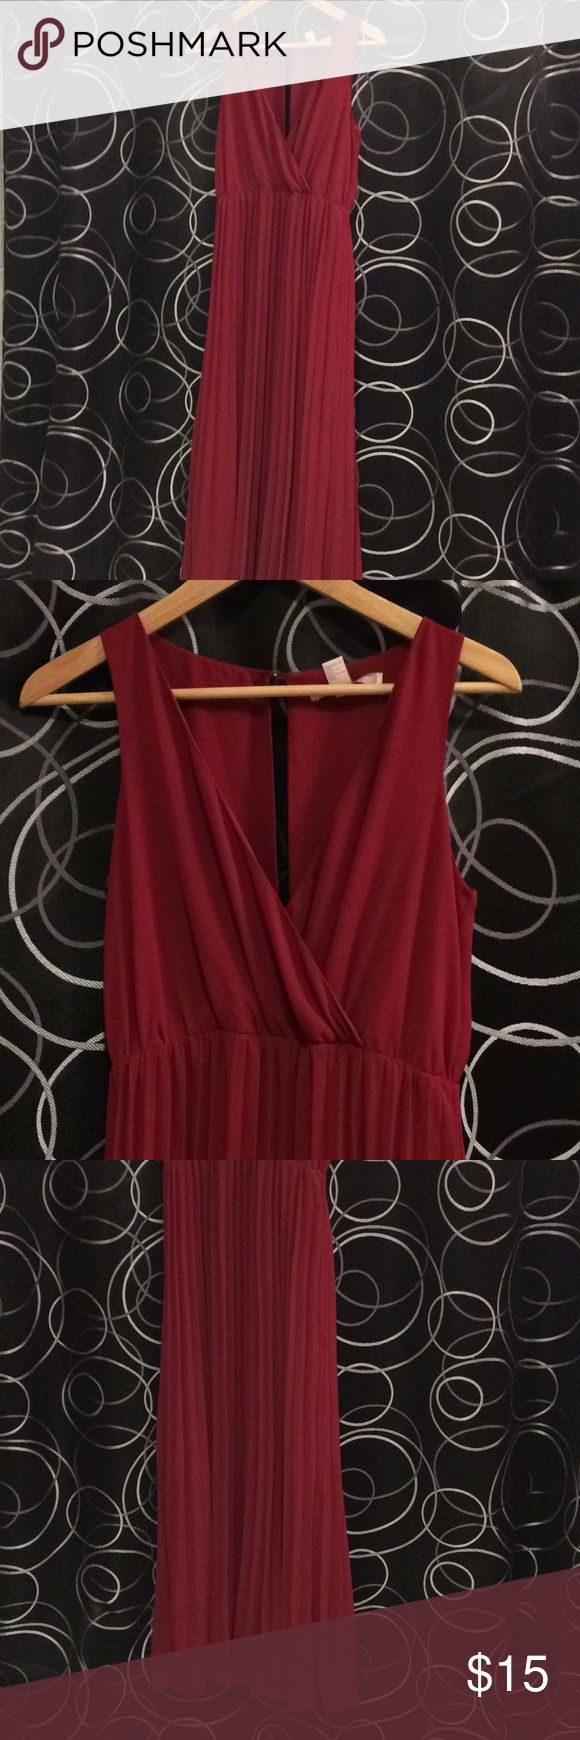 """F21 Burgundy maxi dress formal pleated gown XS Forever 21 brand. Maroon color. Size Contemporary Extra Small (runs one size big) long maxi dress. Cross front shows some sexy but tasteful cleavage. Sits at natural waist. Worn as bridesmaid dress Alongside Lulu's brand Burgundy and red wine gowns. Gently used worn for 4 hours in a wedding. Great for formal dance, prom or date night. Flowy soft polyester chiffon material. Great for dancing. Worn with flats at 5'4"""" and 150lbs. I am usually 4-6…"""